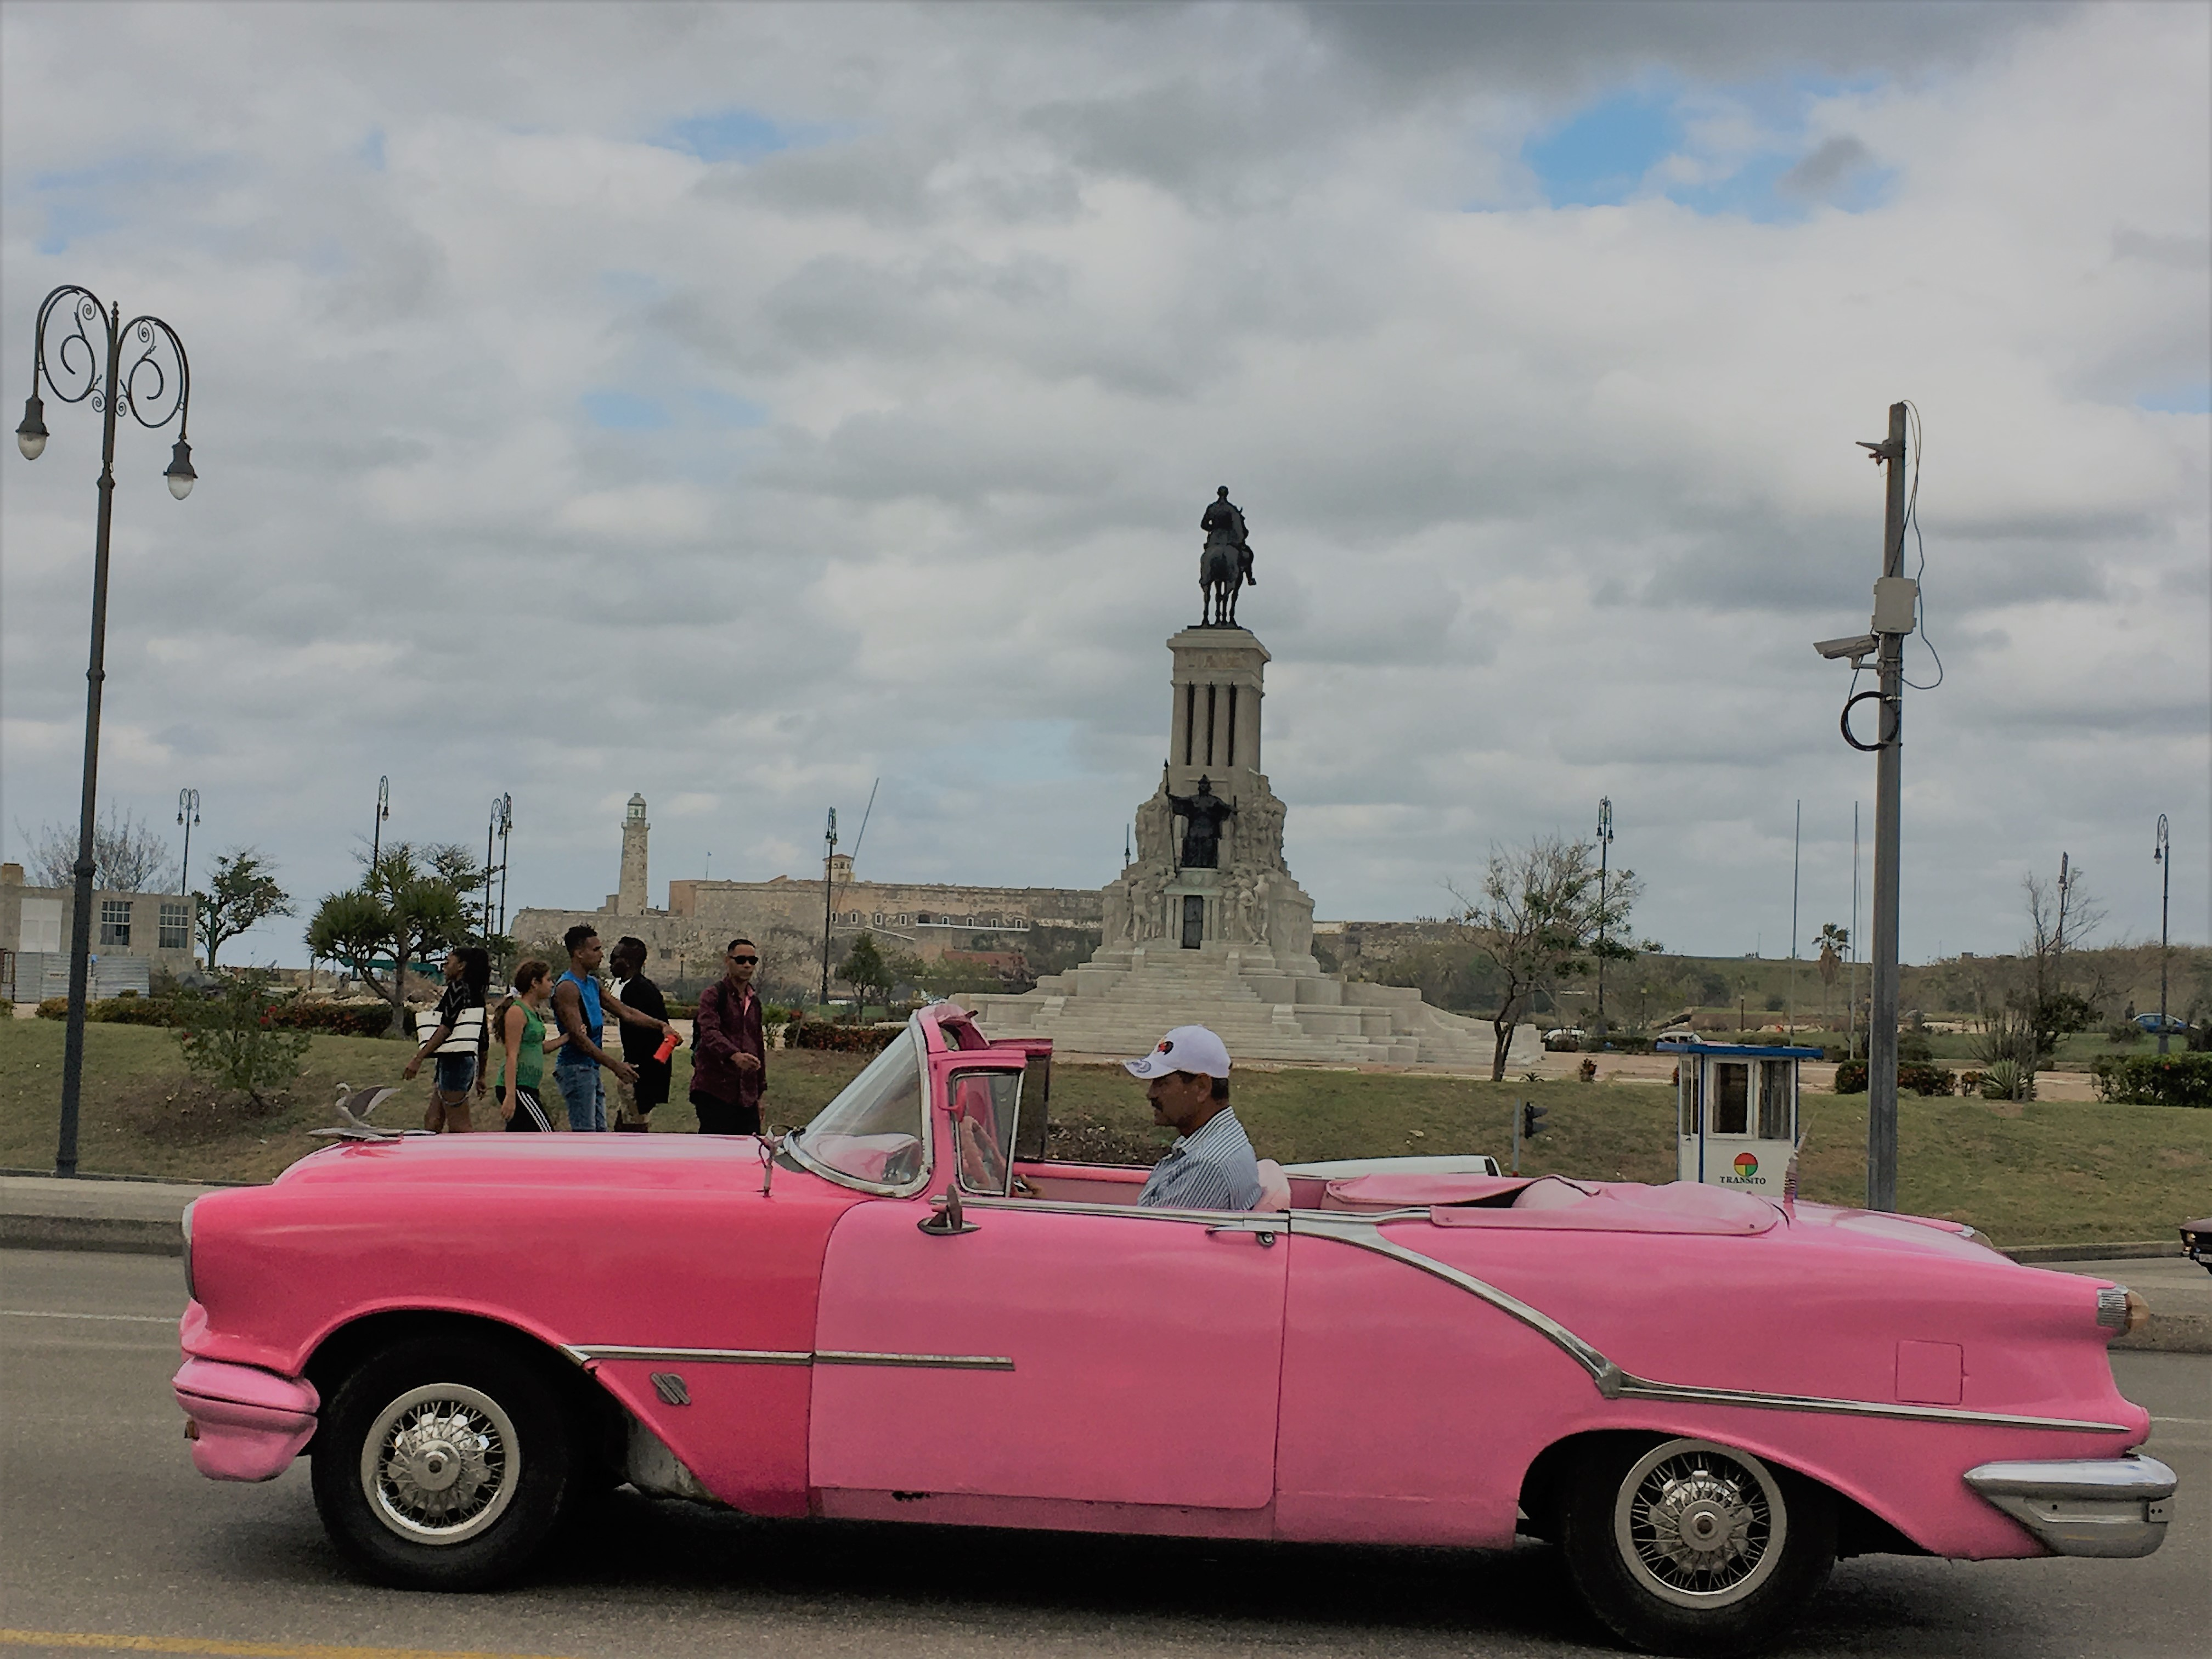 havana; cuba; old car; top 20 travel destinations 2020